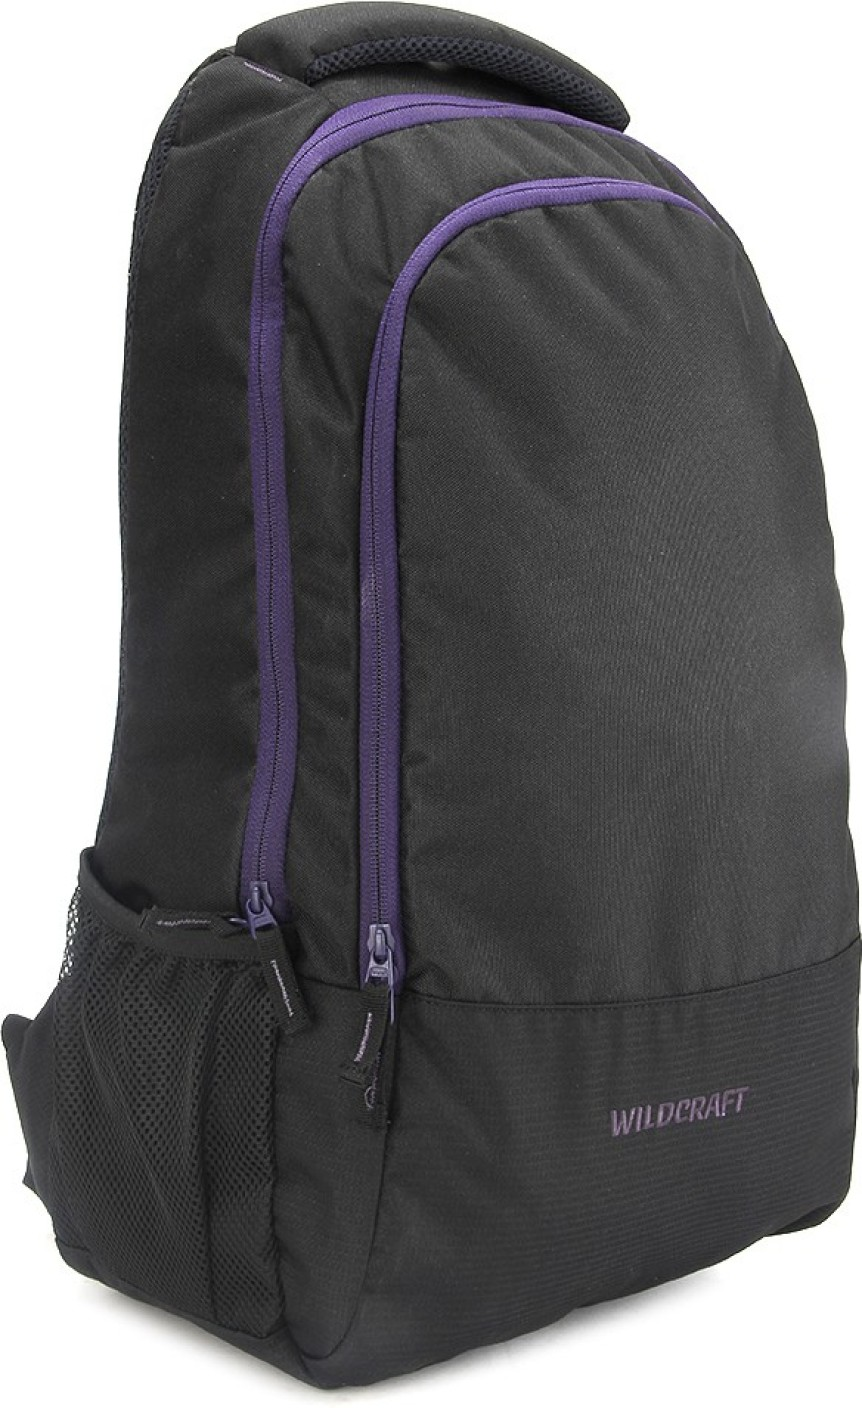 Laptop bags below 500 - Wildcraft 17 Inch Laptop Backpack Add To Cart